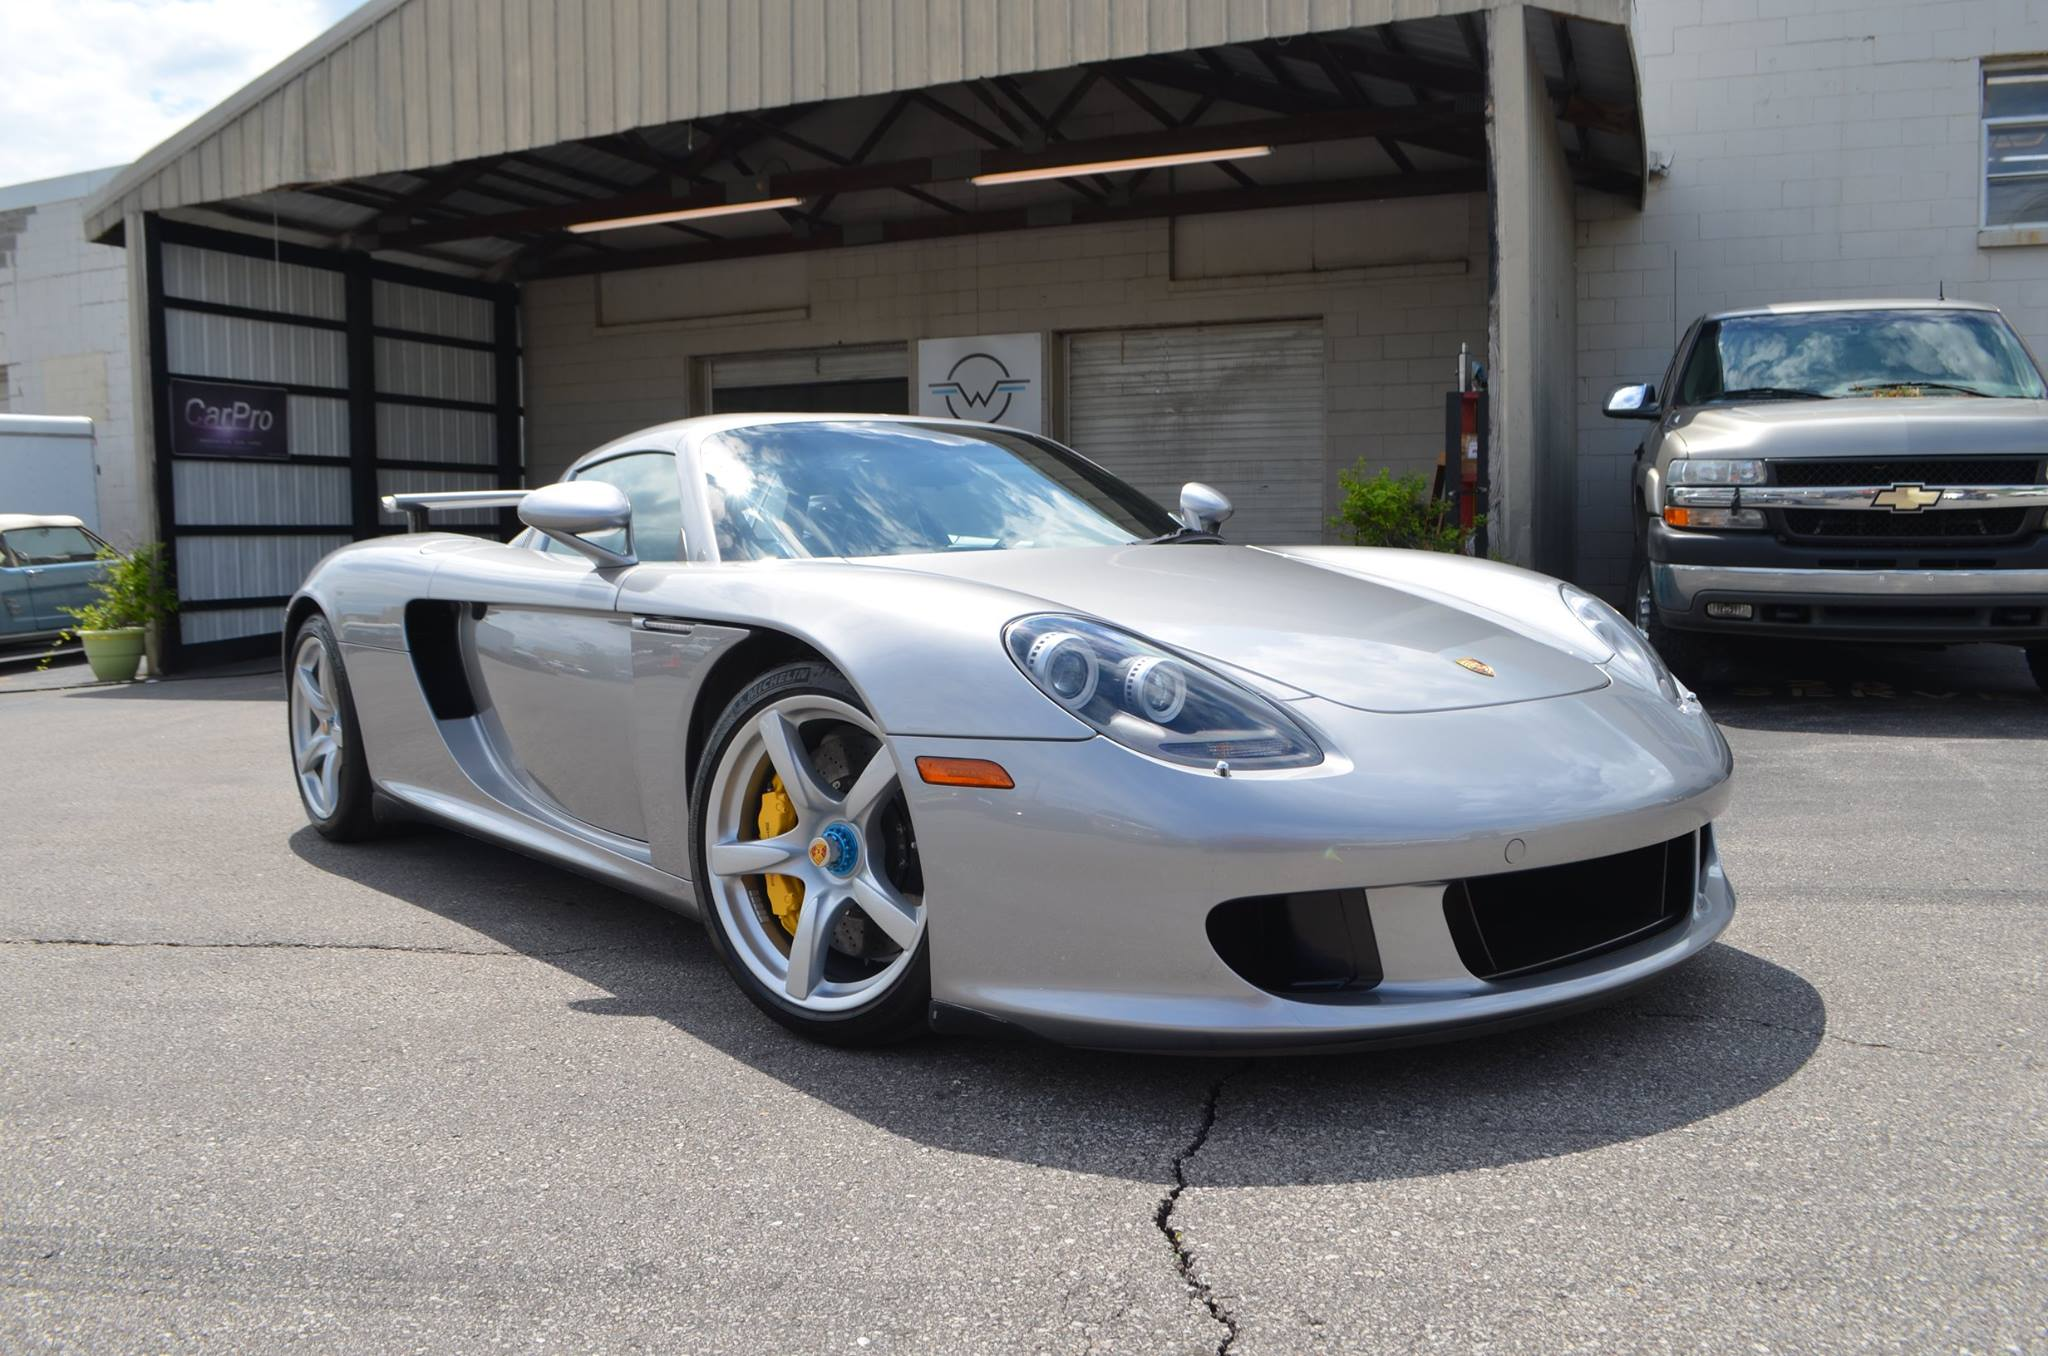 Porsche Carrera GT: Full Body PPF